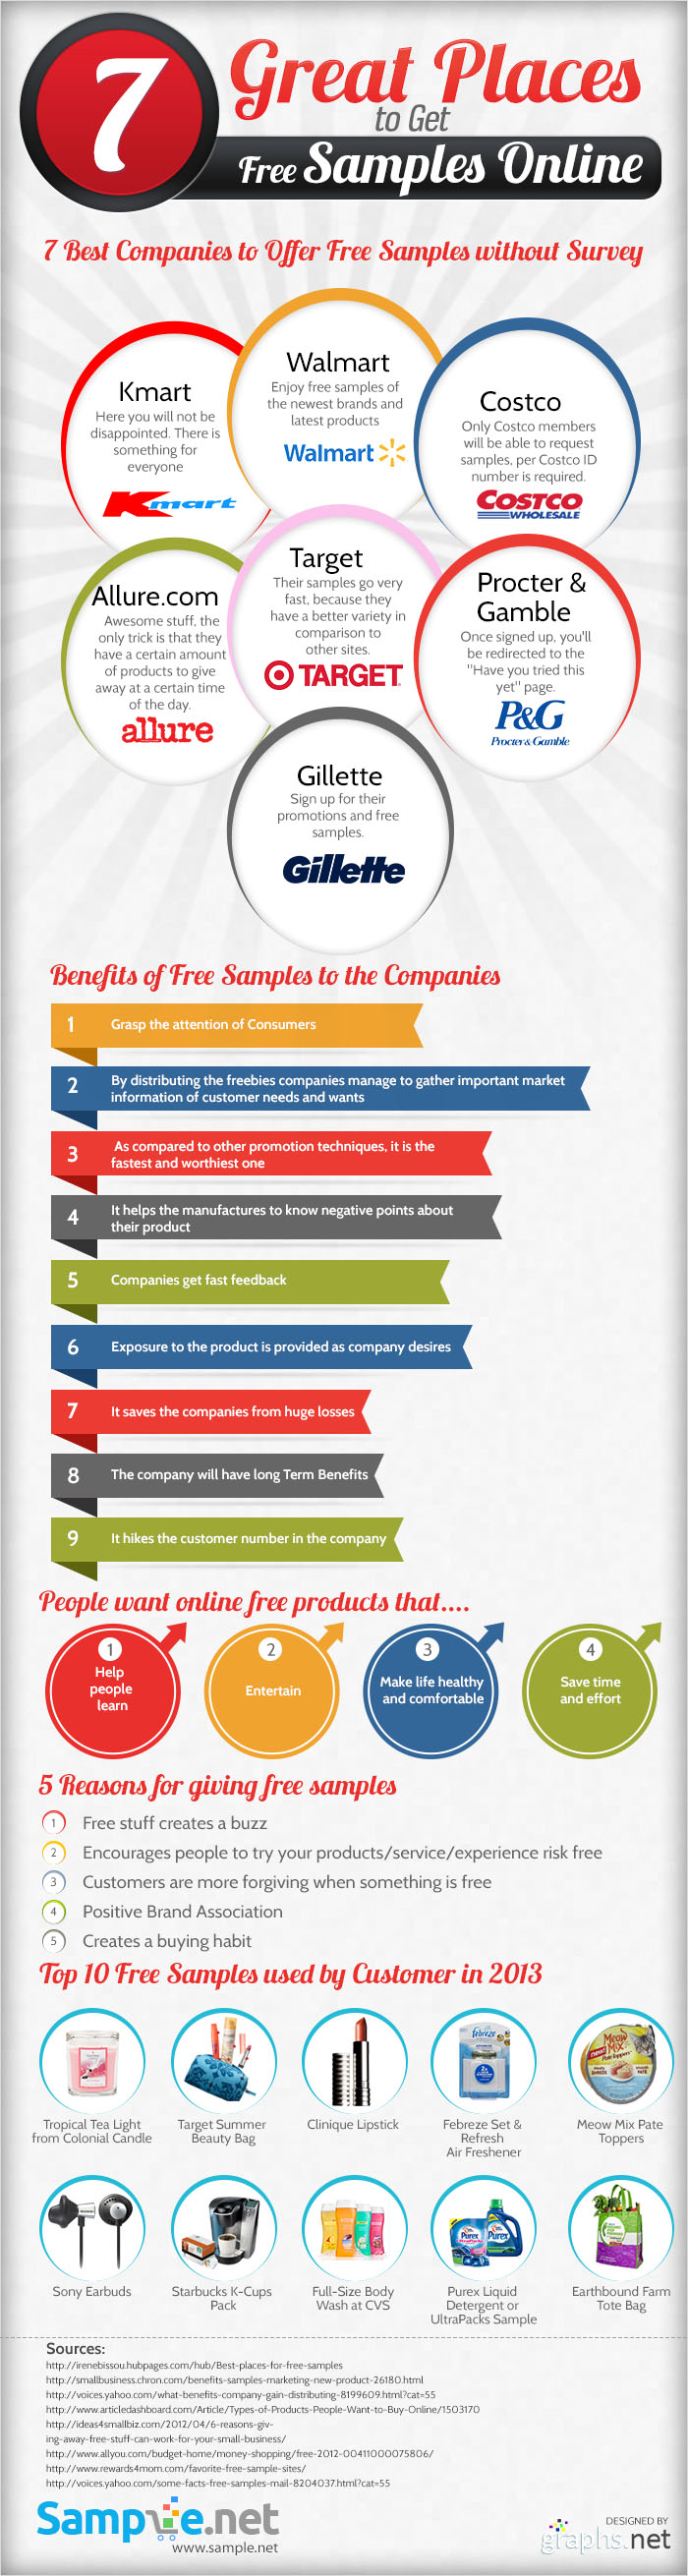 7 Great Places to Get Free Samples Online (1)